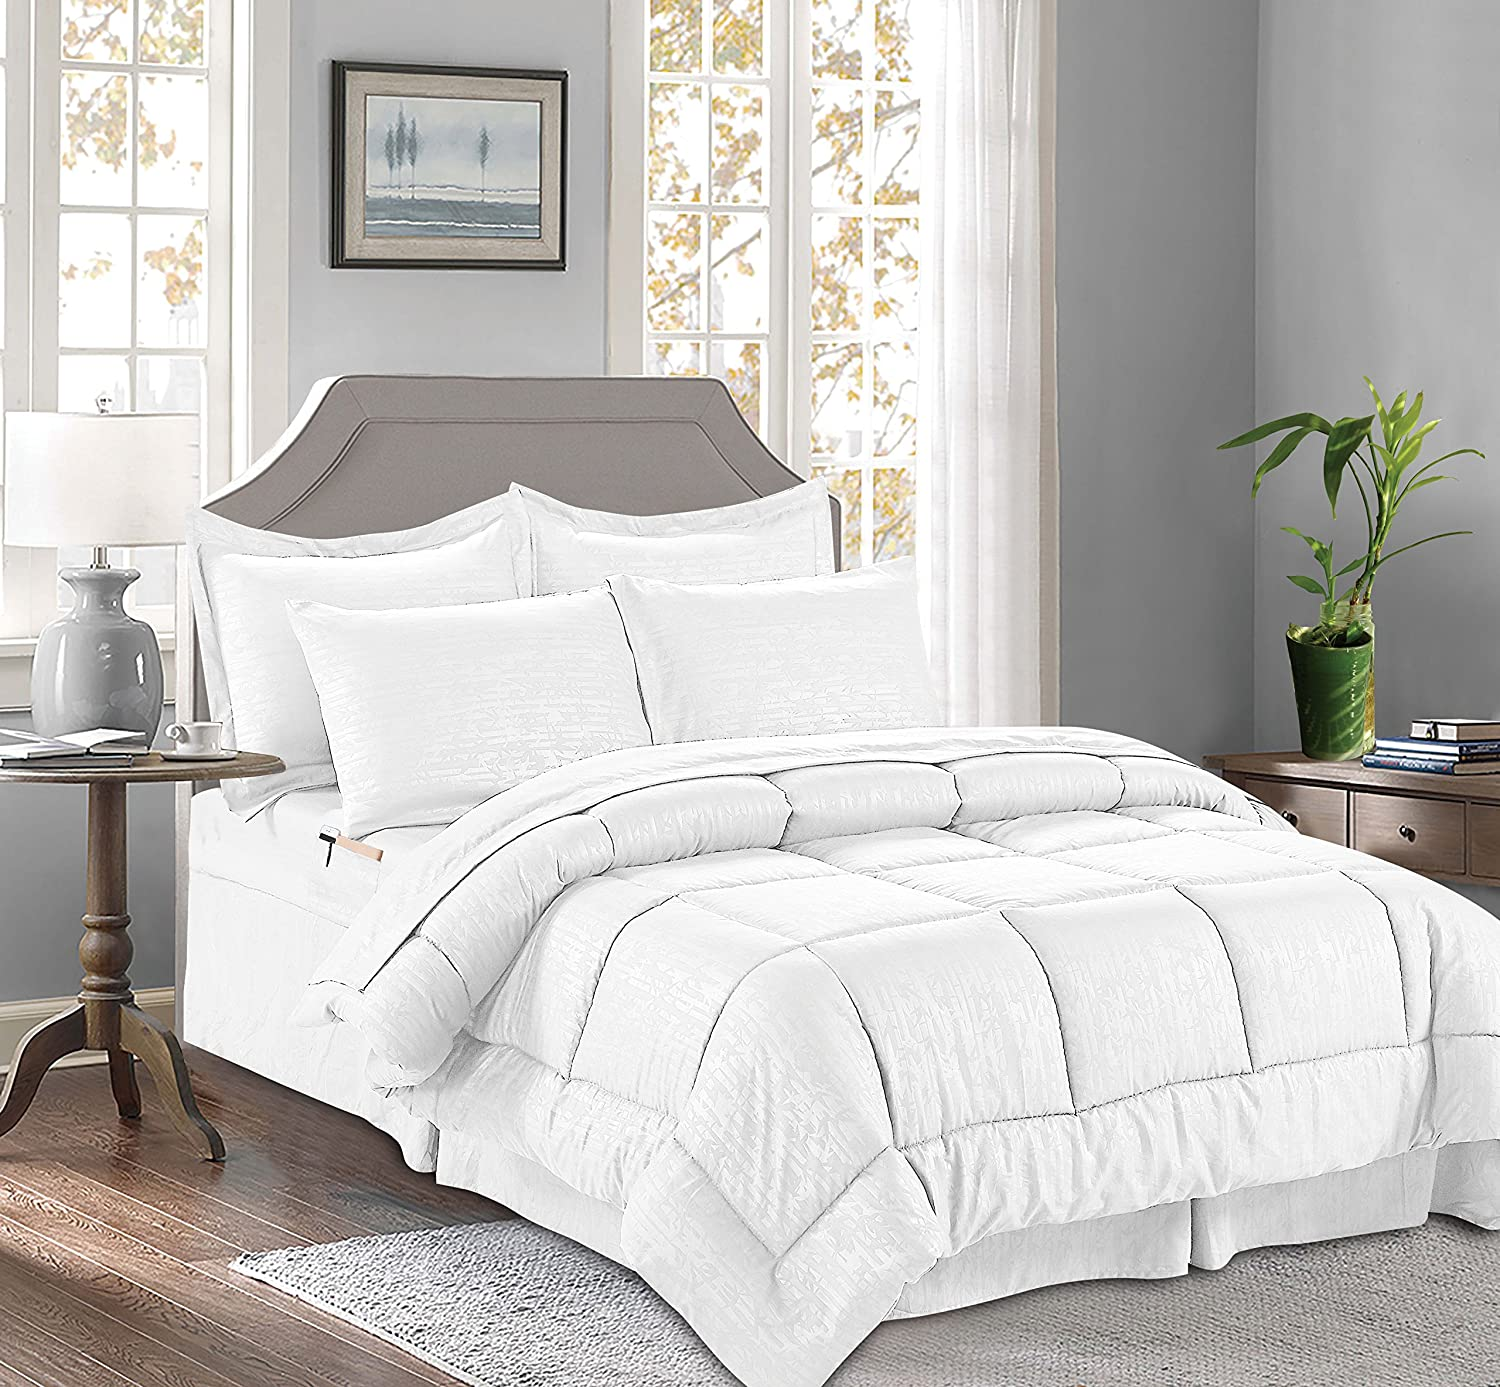 Amazon Com Celine Linen 8 Piece Bed In A Bag Comforter Silky Soft Bamboo Design Comforter Bed Sheet Set With Double Sided Storage Pockets Full Queen White Home Kitchen